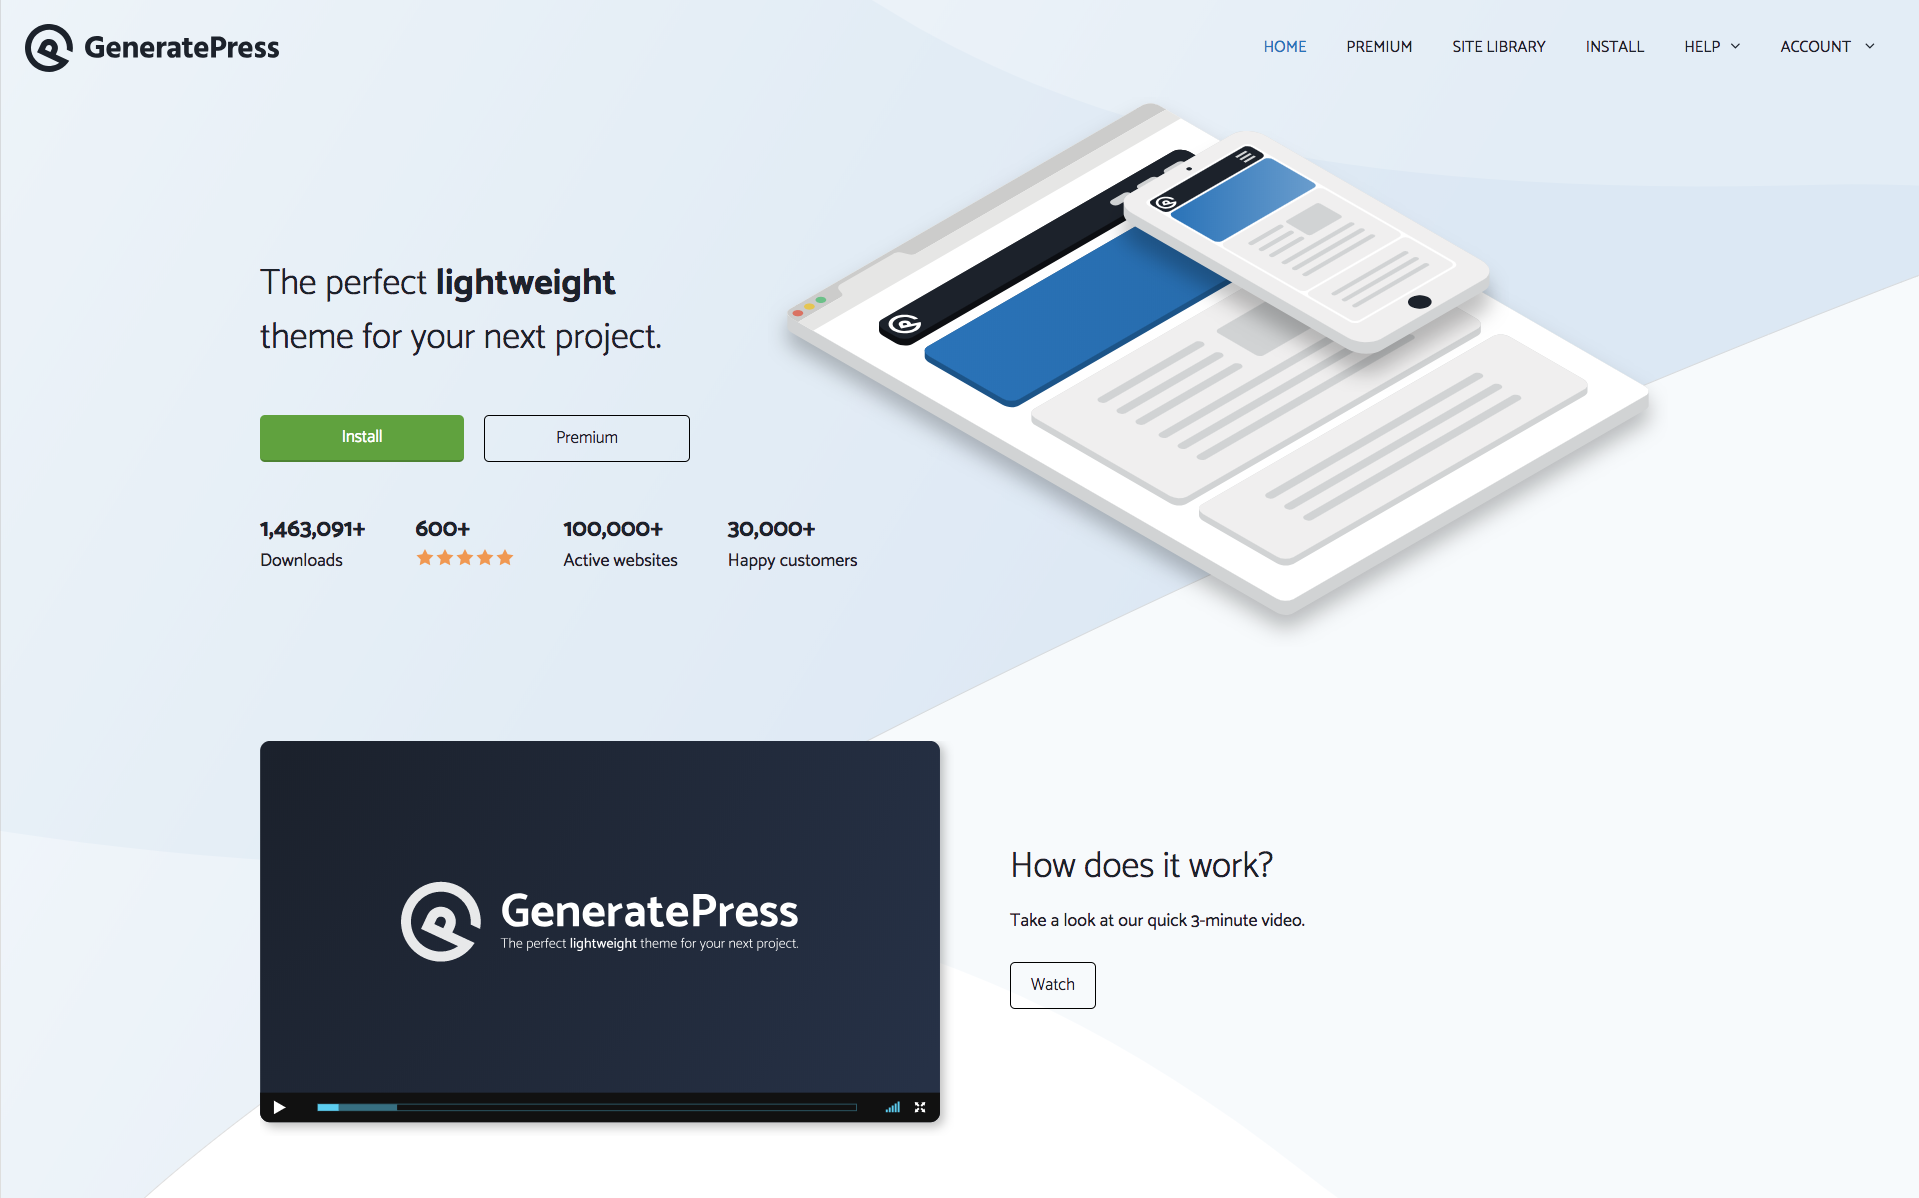 GeneratePress Home